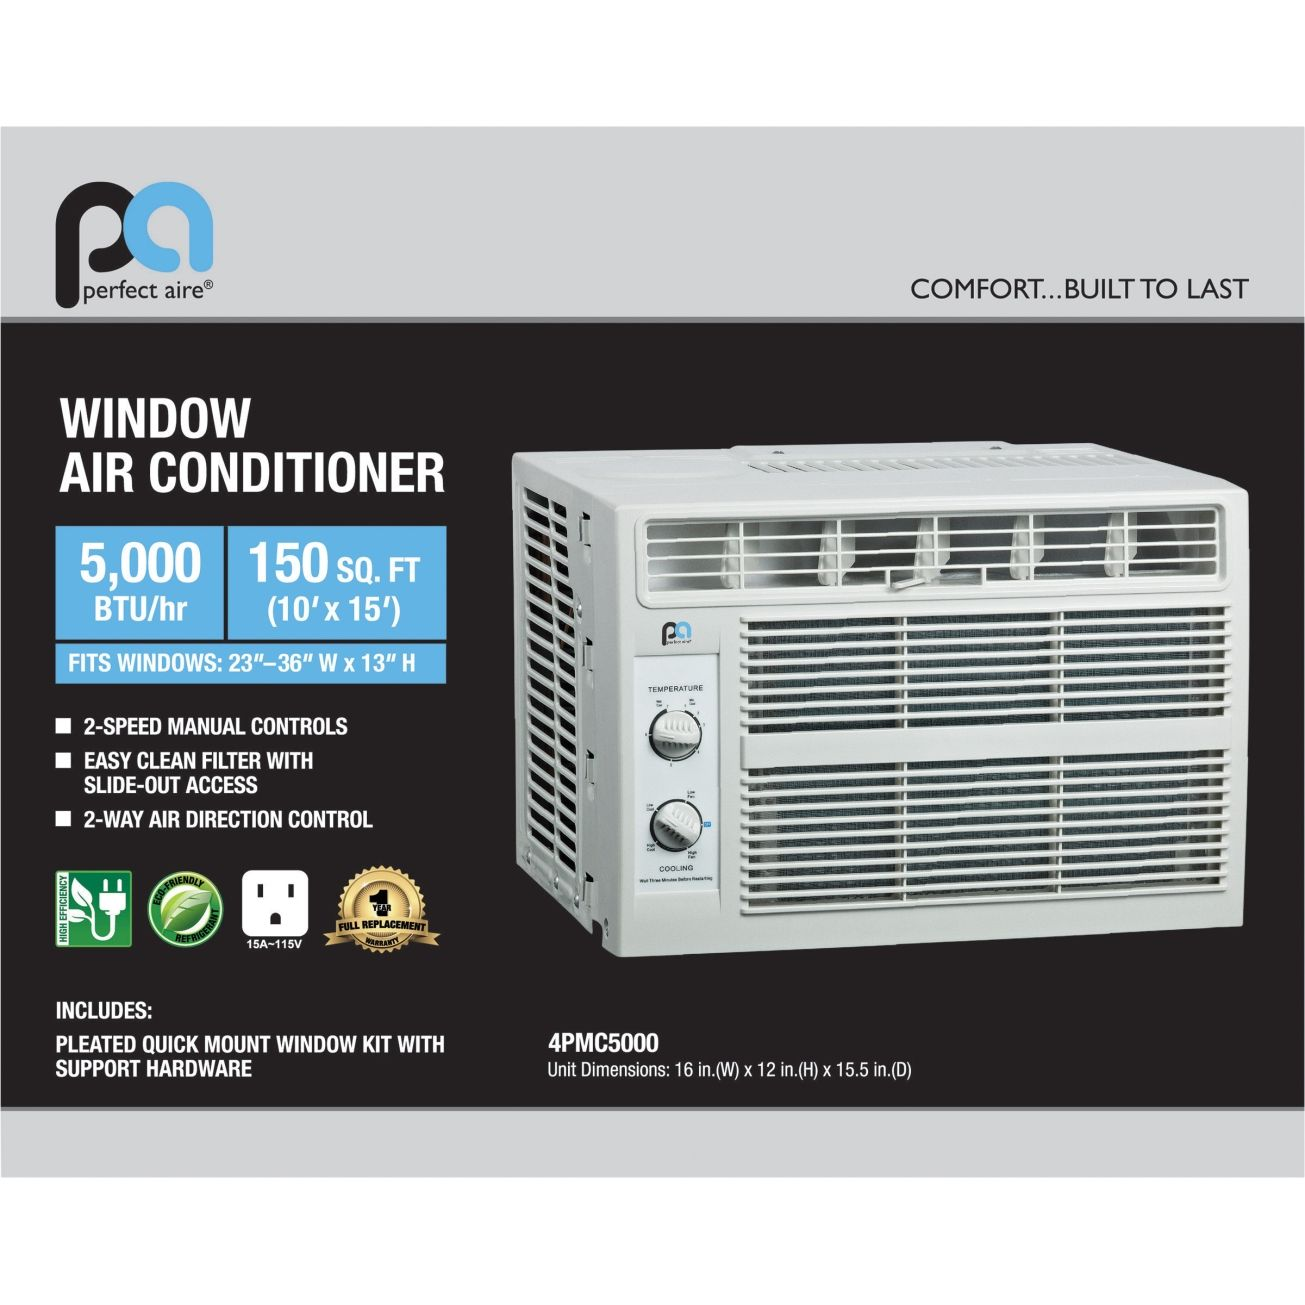 Perfect Aire 5000 BTU Window Air Conditioner (4PMC5000